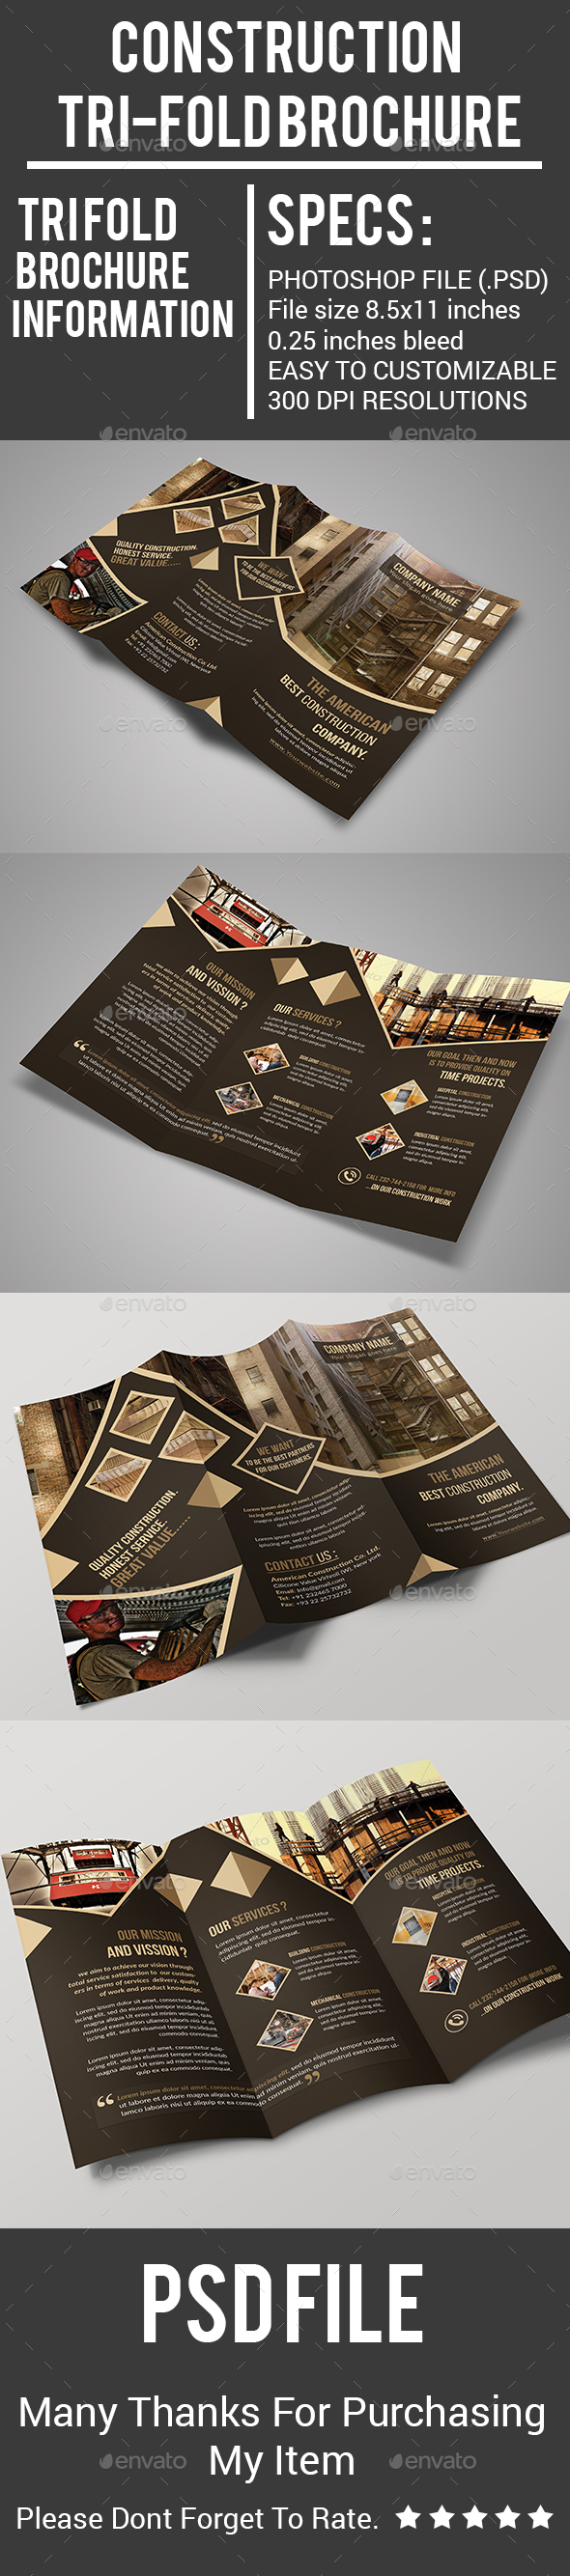 Construction Tri-Fold Brochure - Corporate Brochures